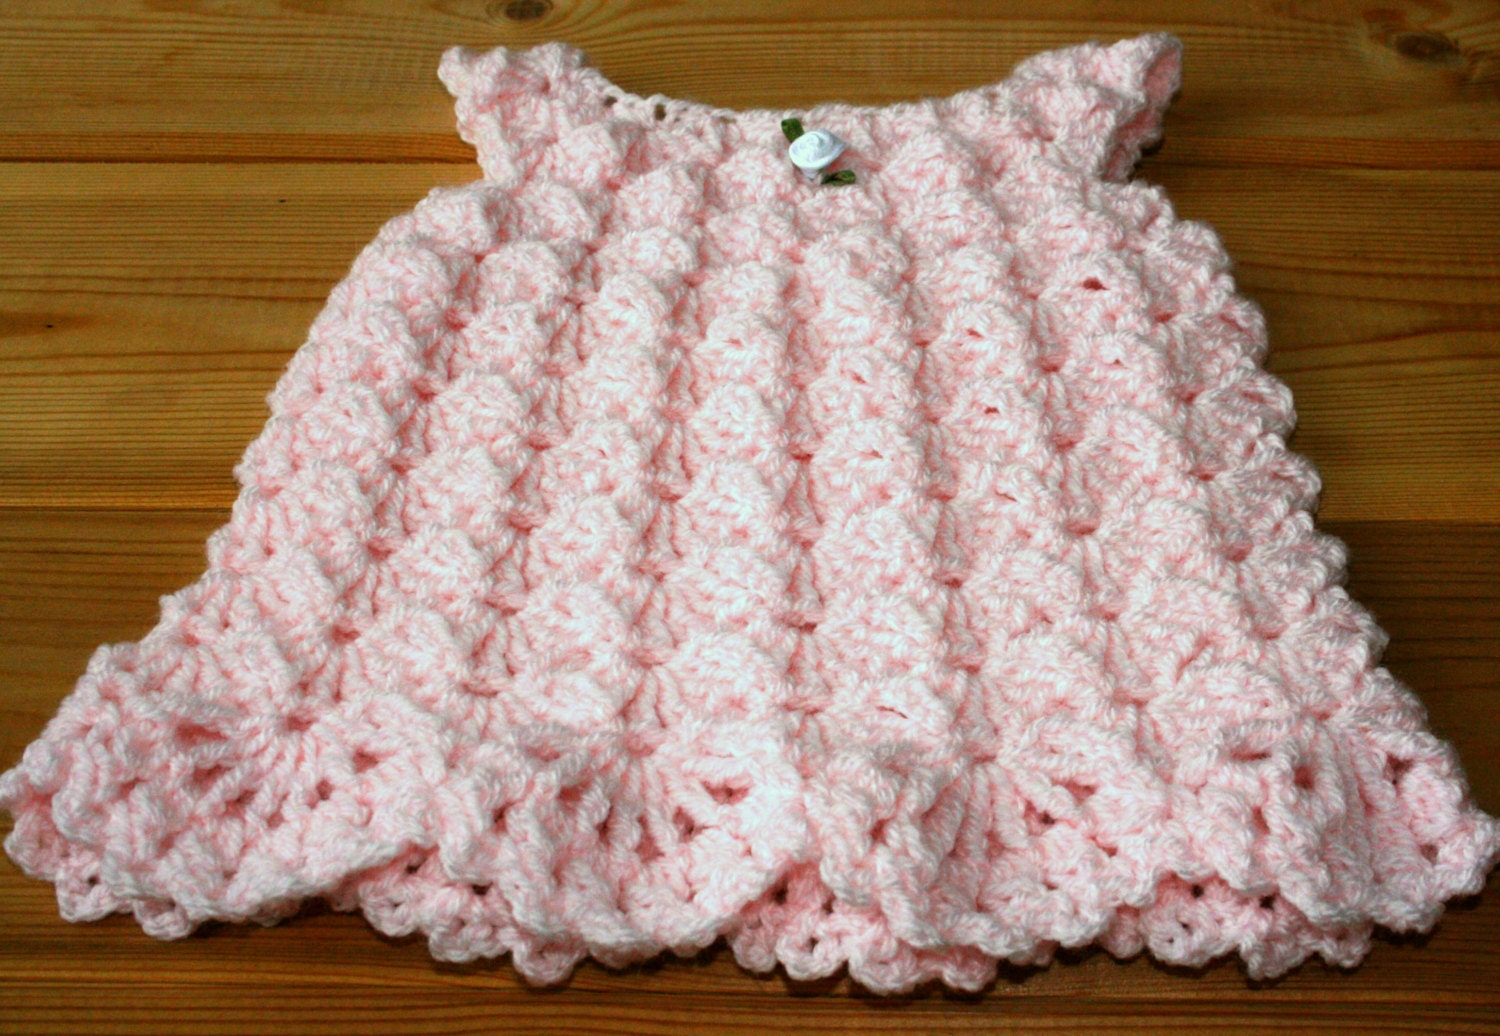 cute newborn baby crochet dress 0  3m girl clothes etsy online baby